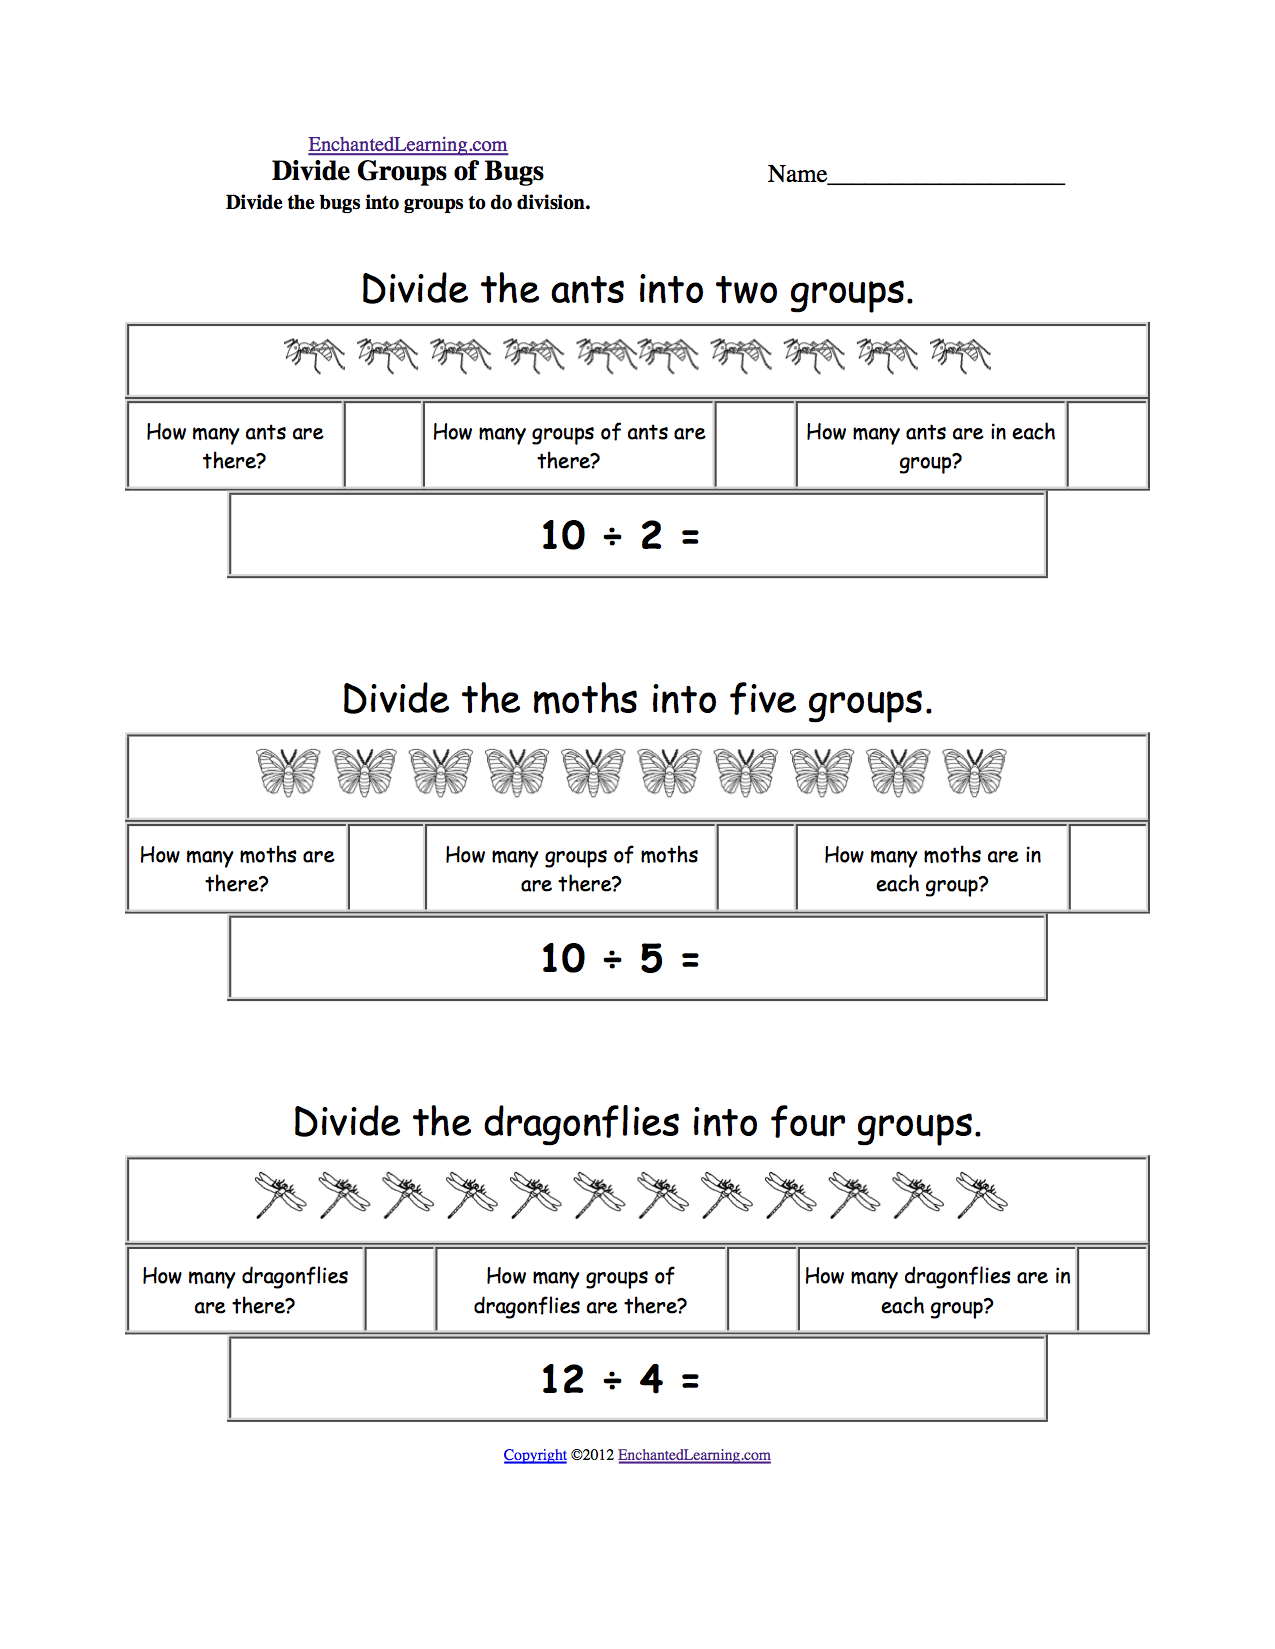 Printables Equal Groups Multiplication Worksheets division enchantedlearning com divide bugs into groups